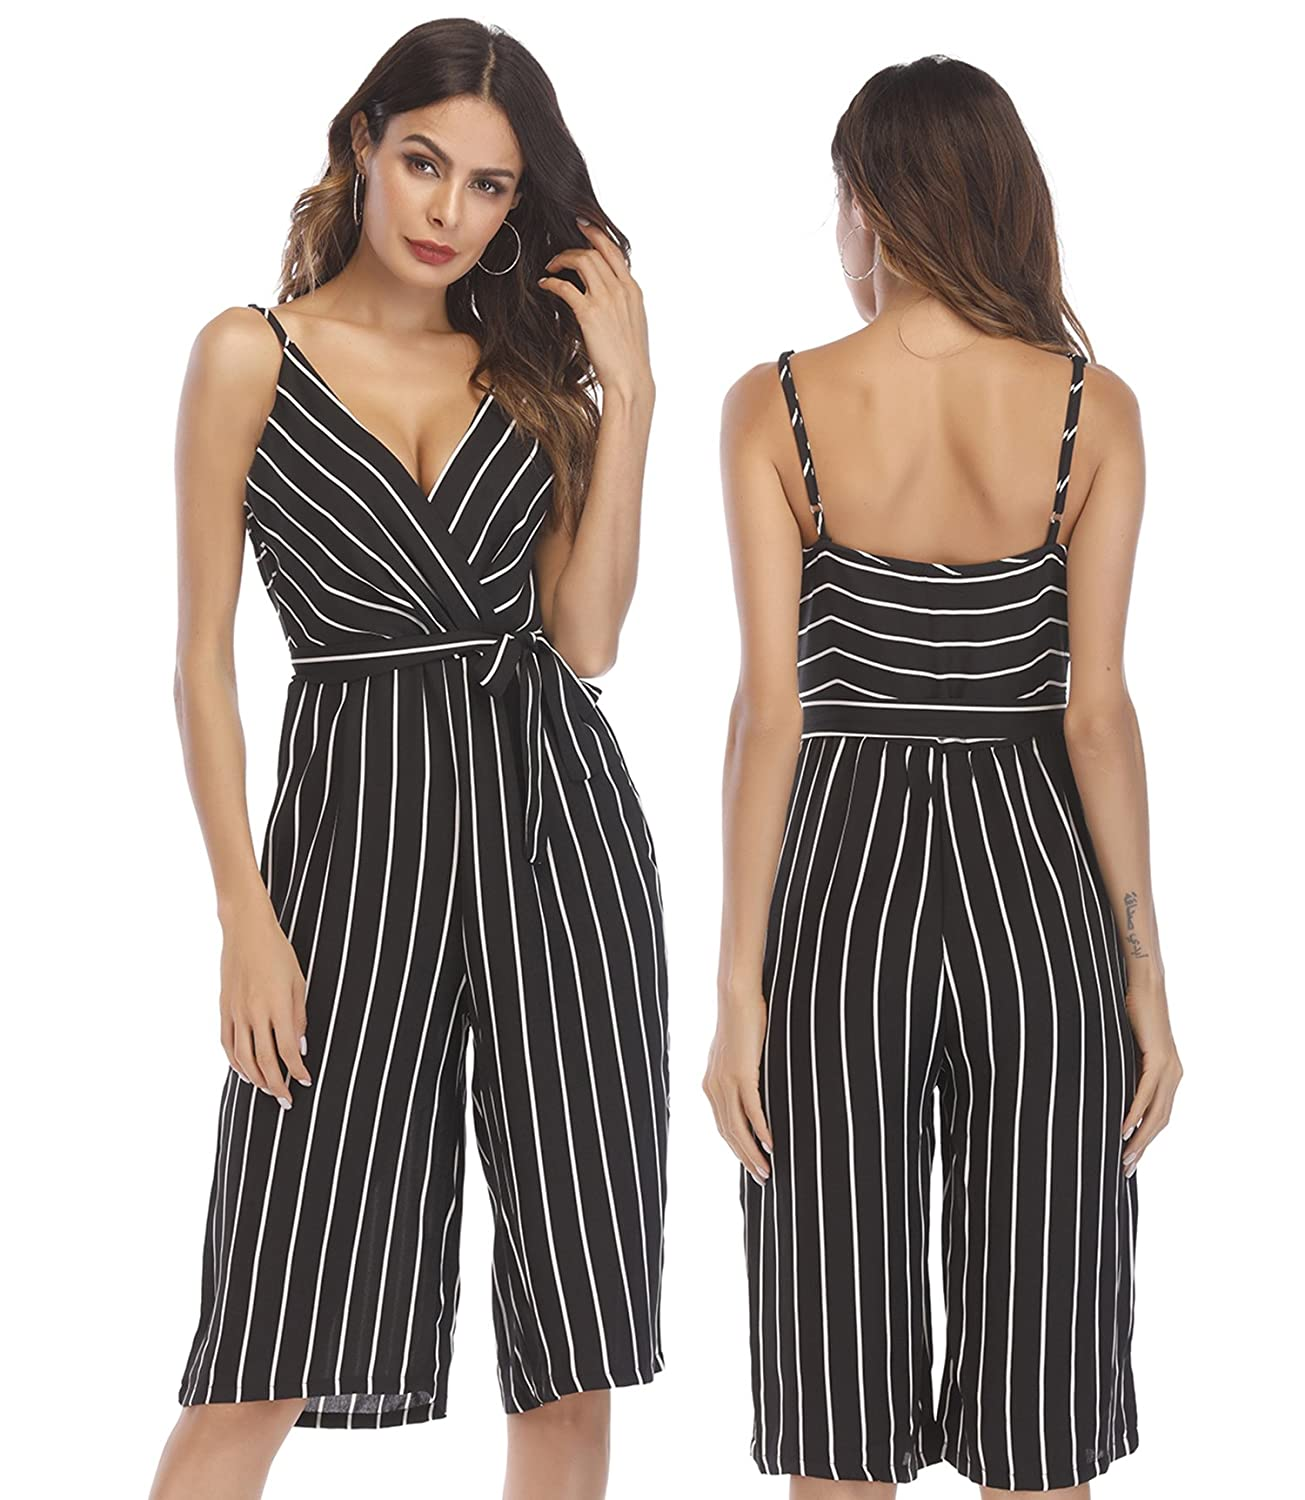 24afb0e28fda Amazon.com  OUMAL Women Cute Striped Romper Backless V Neck Spaghetti Strap  Boho Summer Jumpsuit with Belt  Clothing